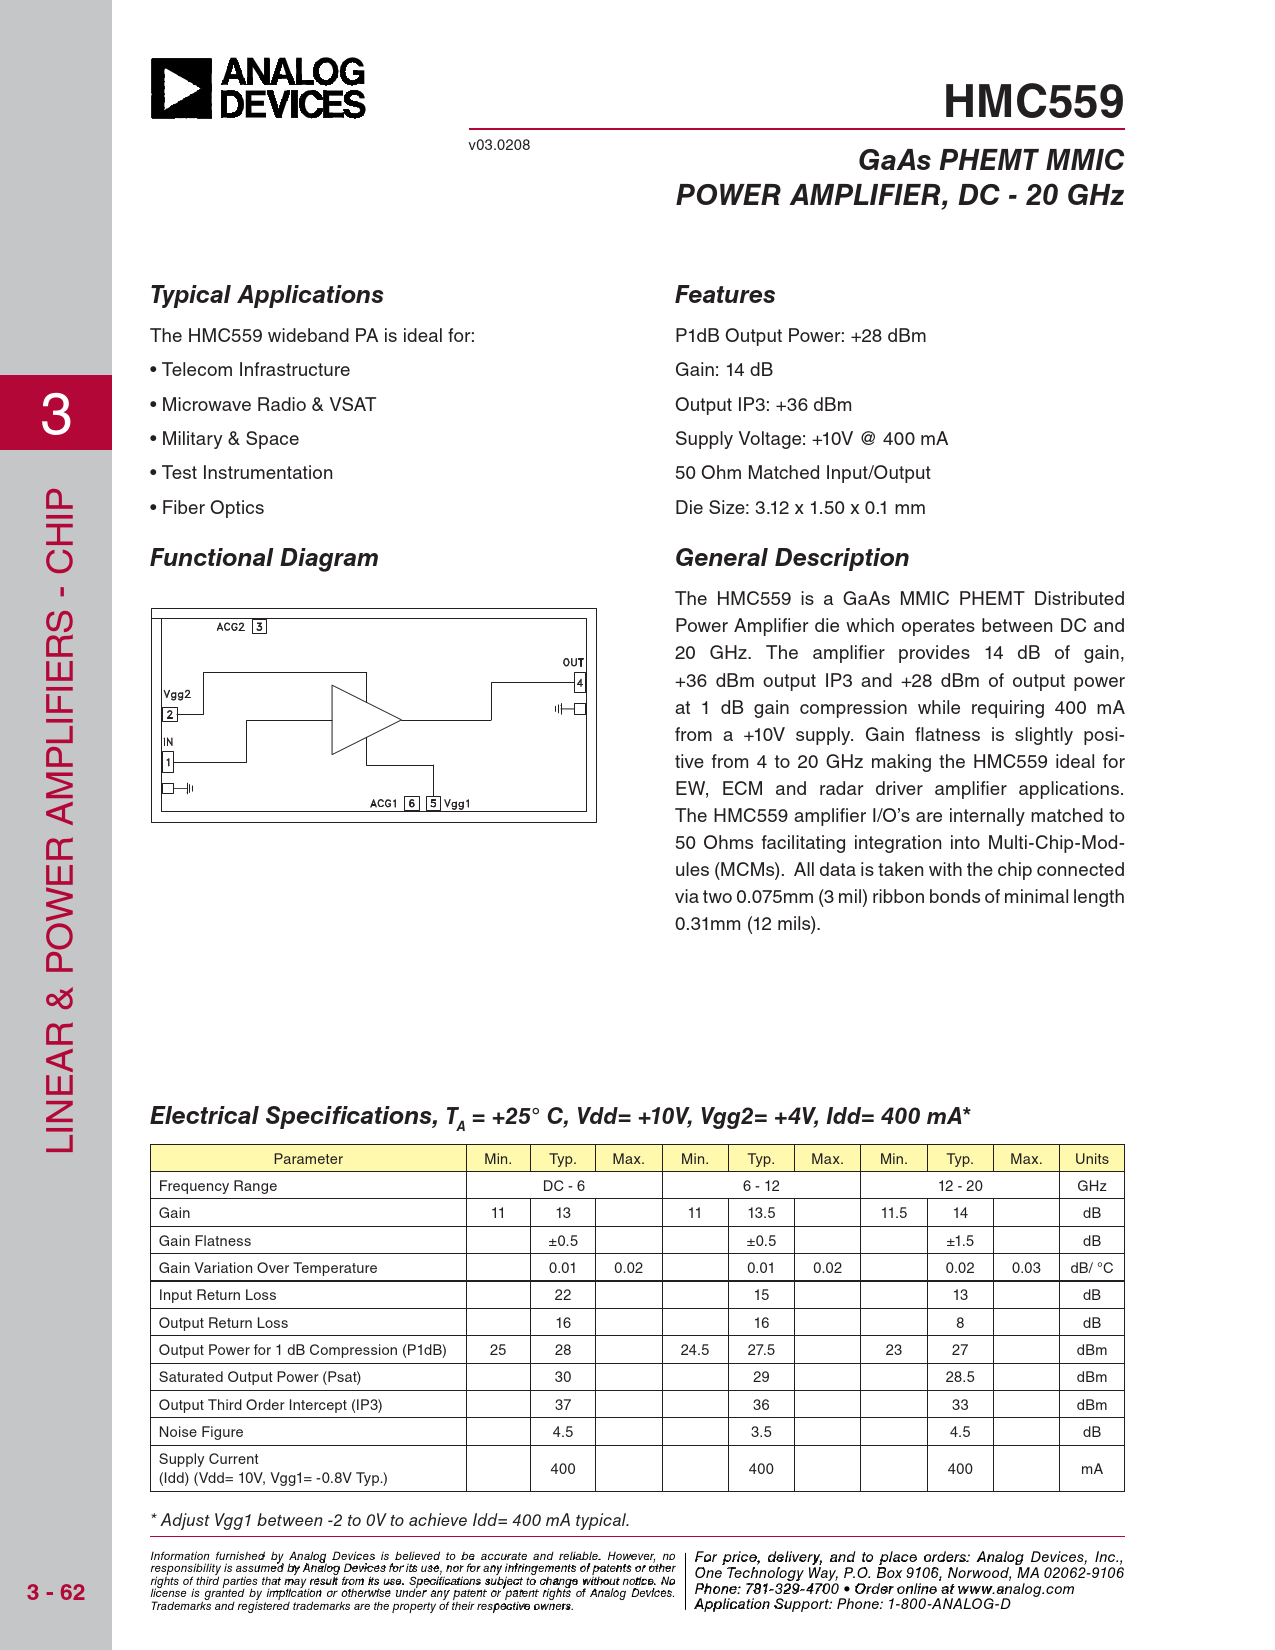 Datasheet HMC559-DIE Analog Devices